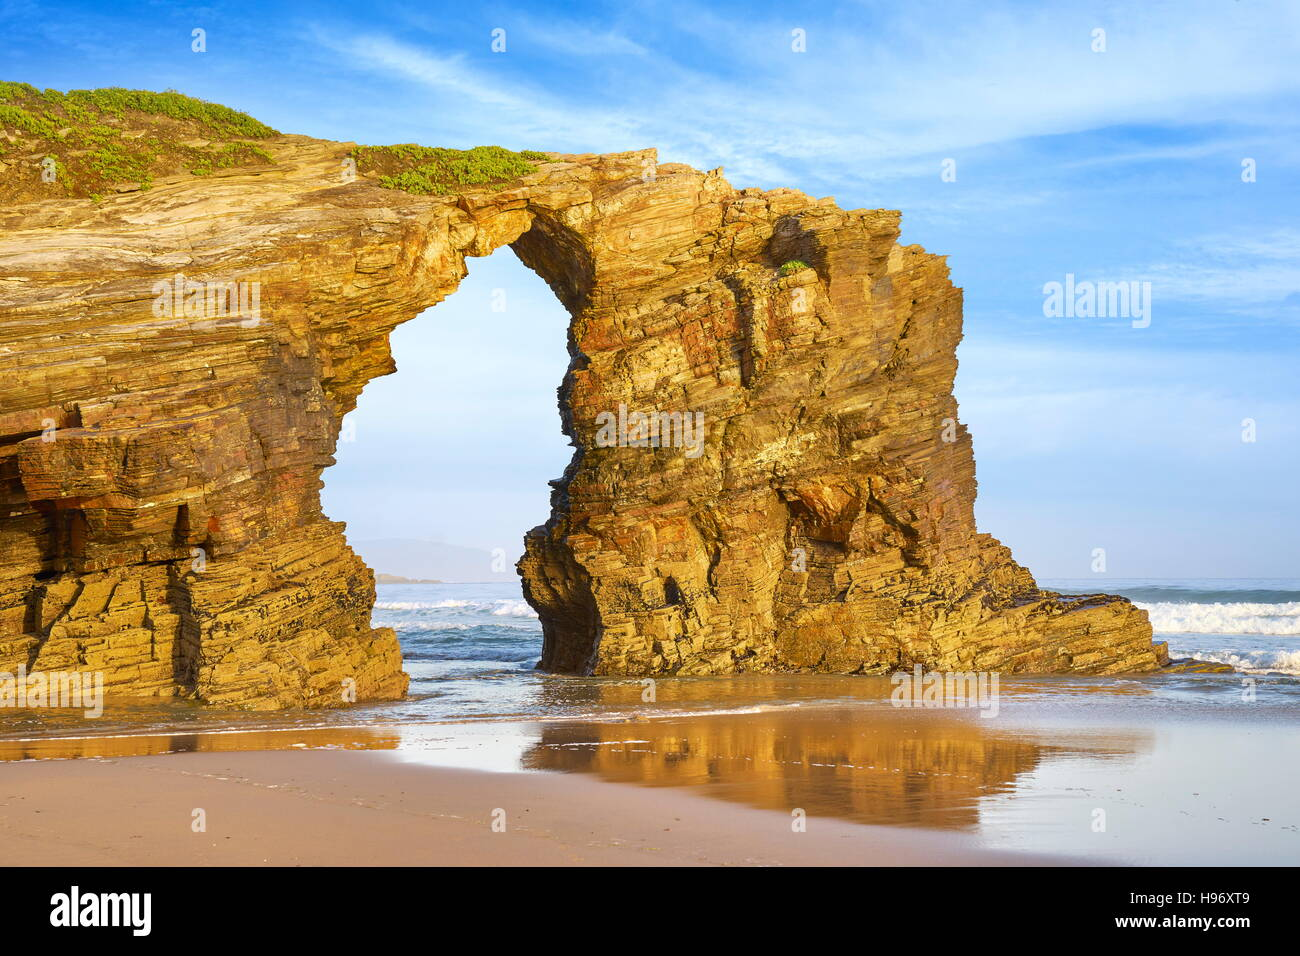 Beach of the cathedrals, Praia As Catedrais, Ribadeo, Spain - Stock Image